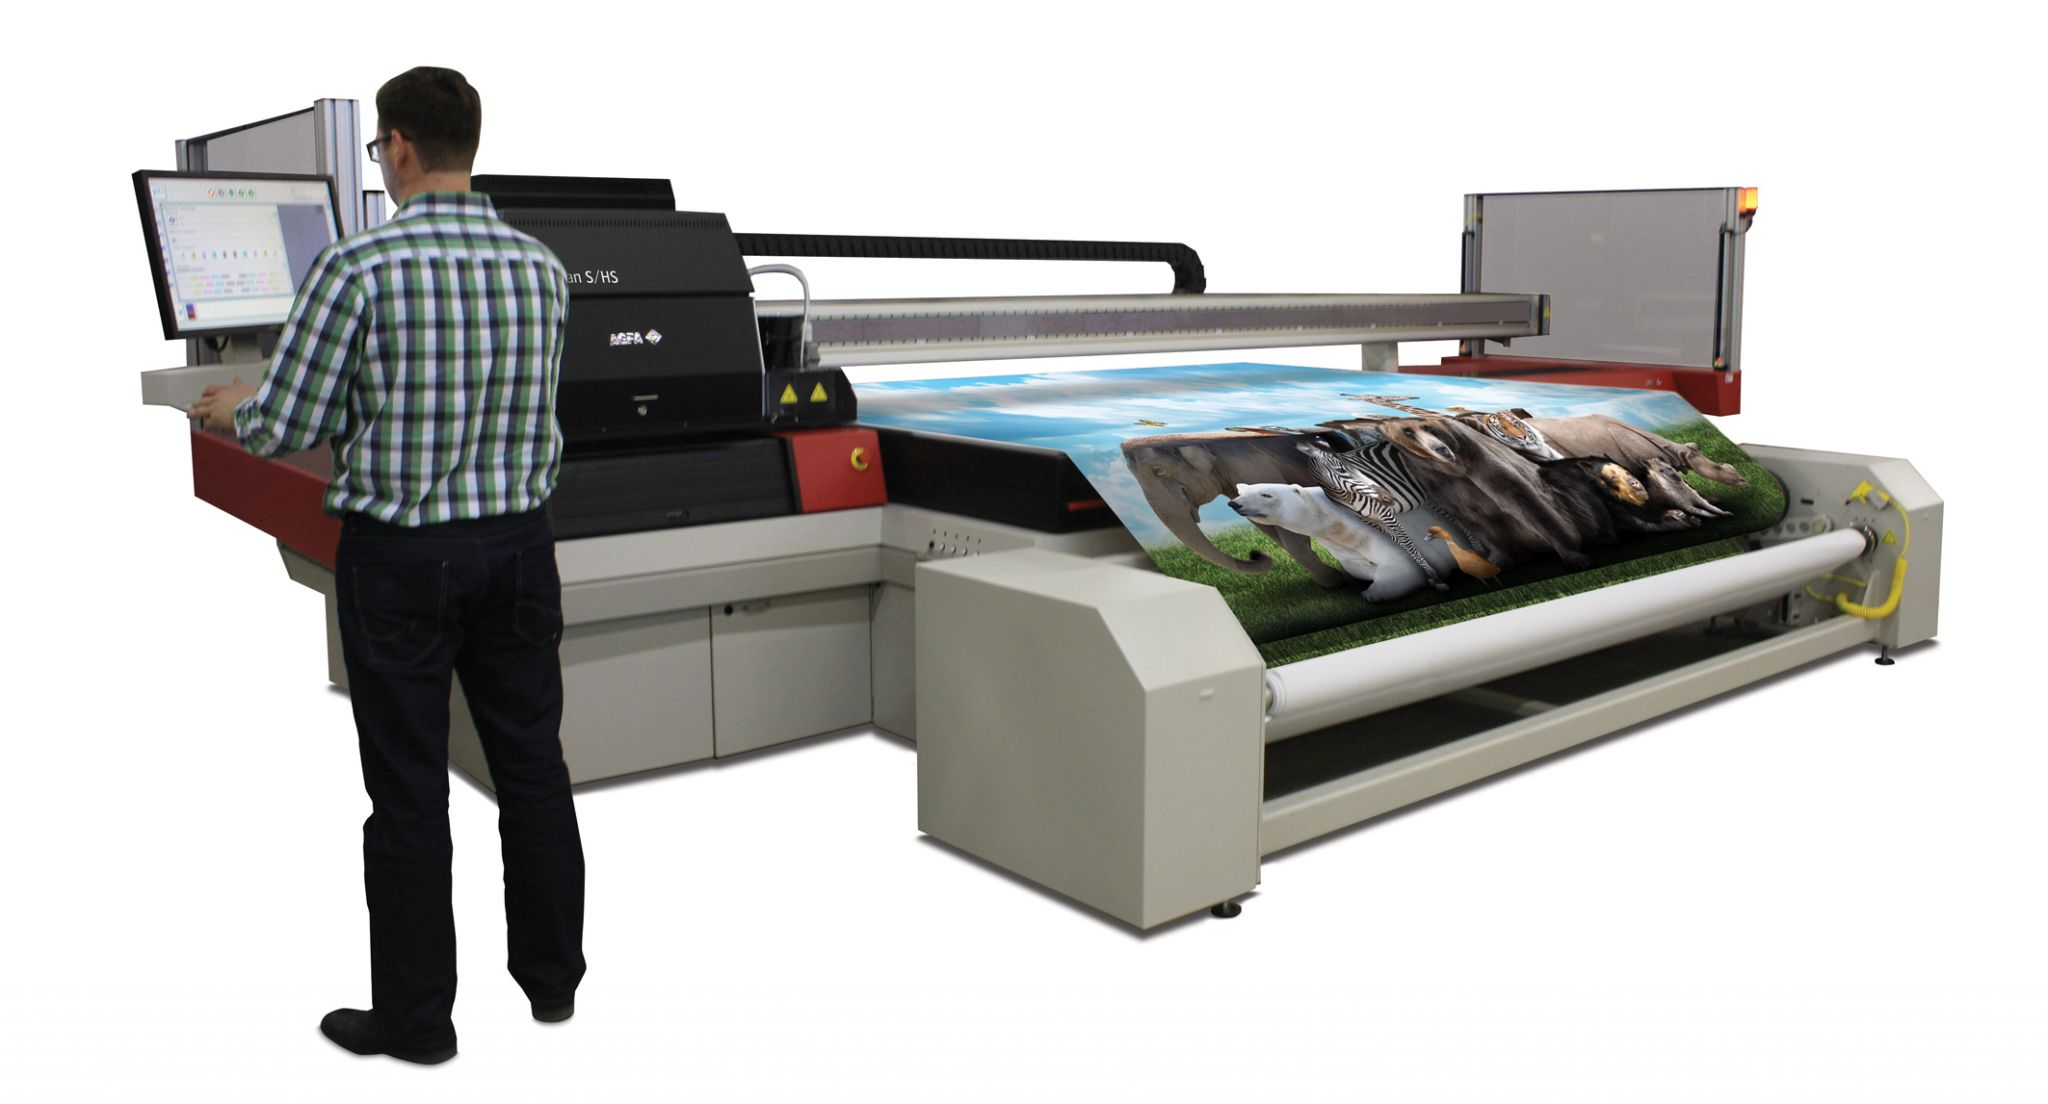 Digital Inkjet Printing : Digital inkjet printing opportunities arise for